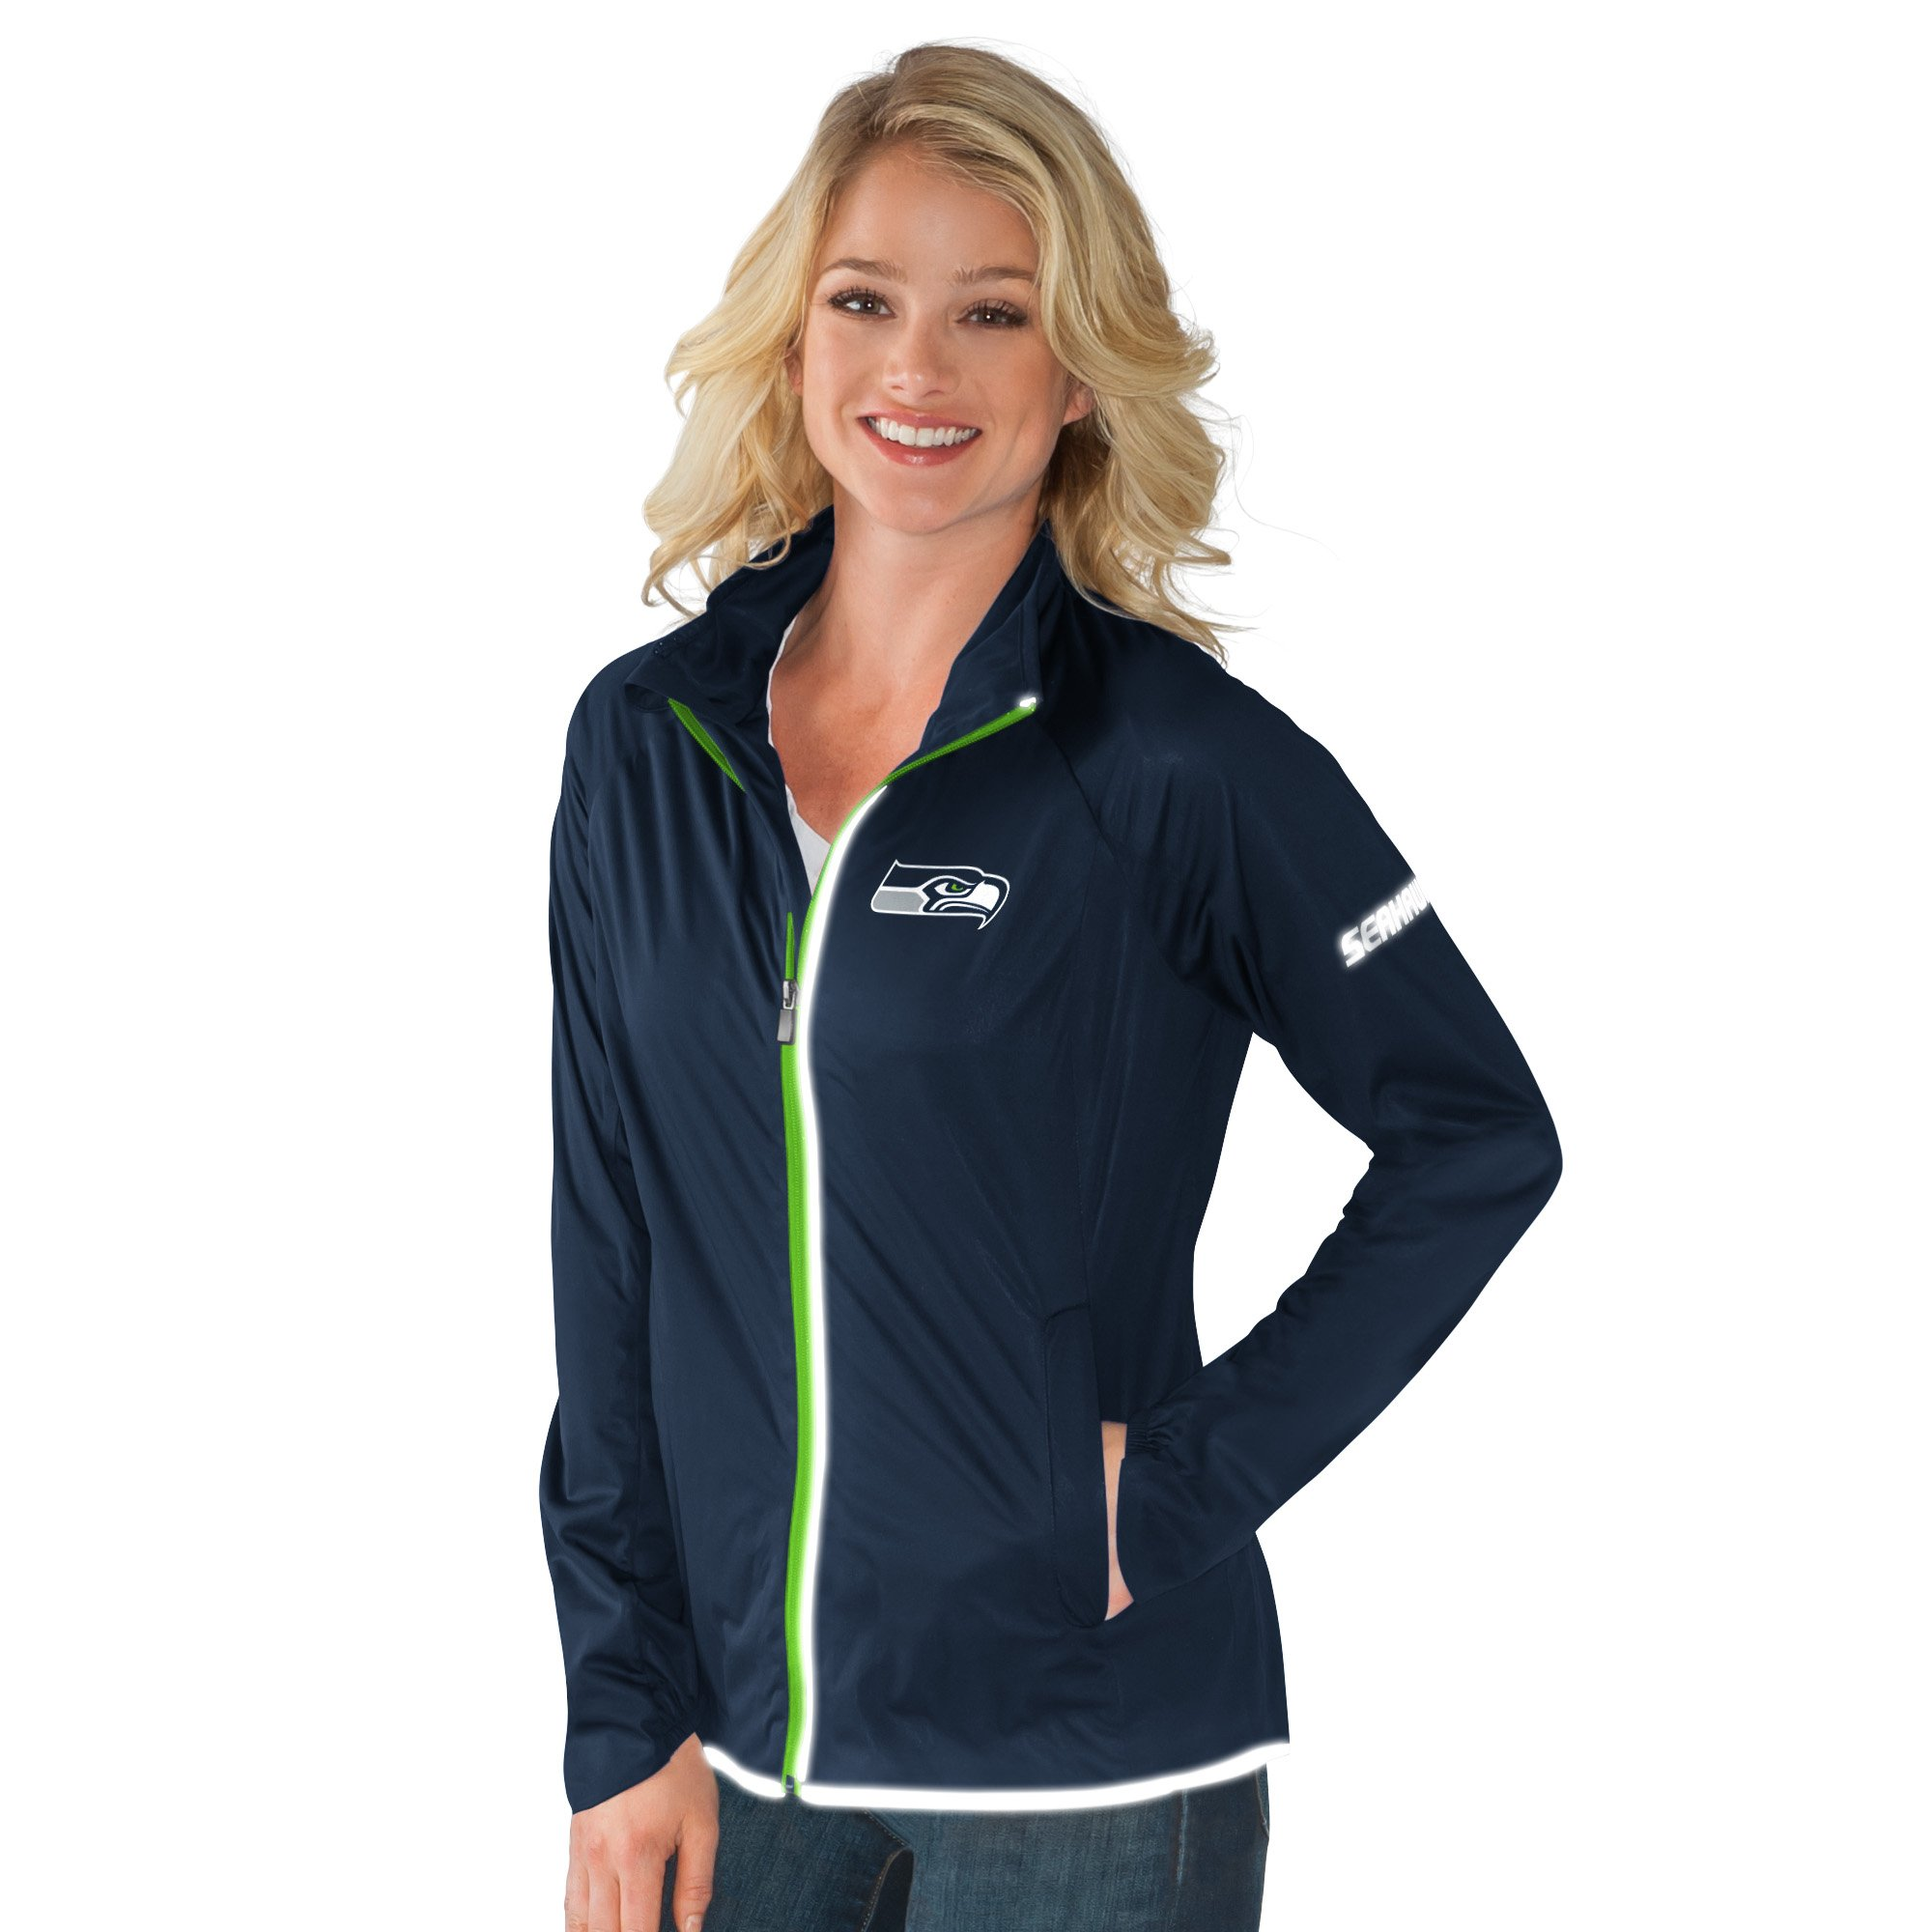 Seattle Seahawks Team Colors Full Zip Women's Track Jacket by G-III Sports